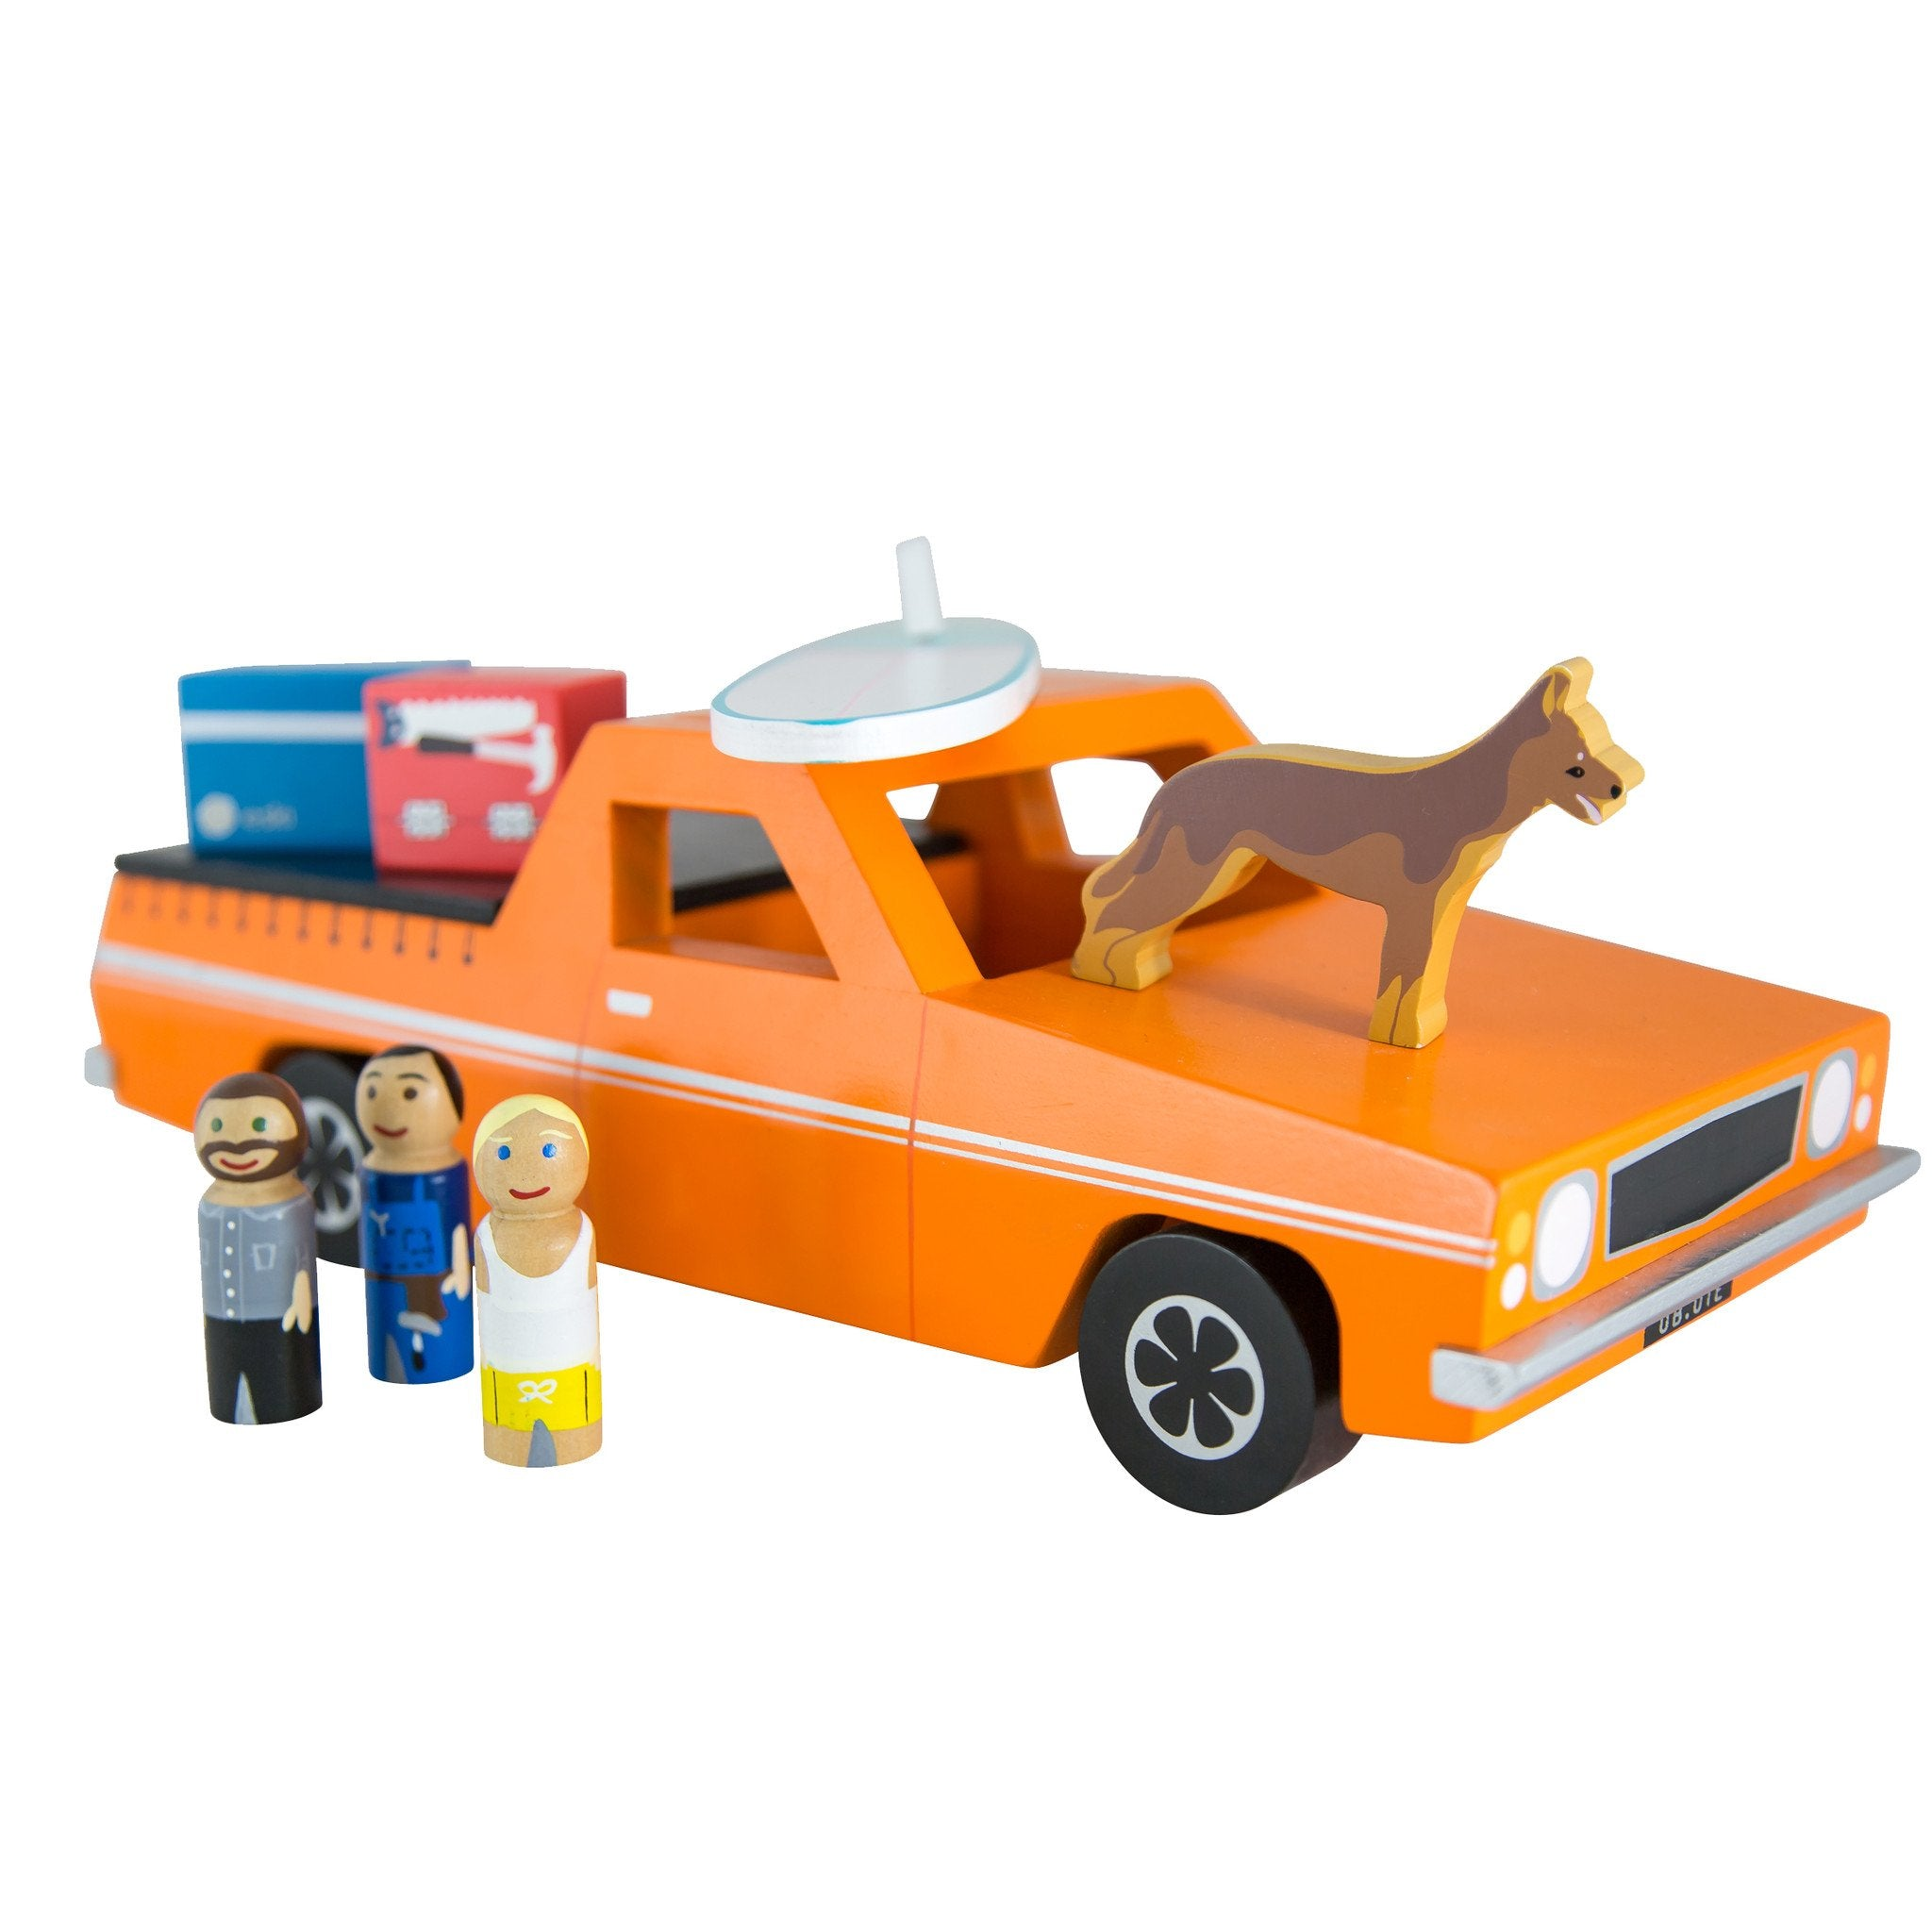 Make Me Iconic Ute Toy Make Me Iconic Toy Cars at Little Earth Nest Eco Shop